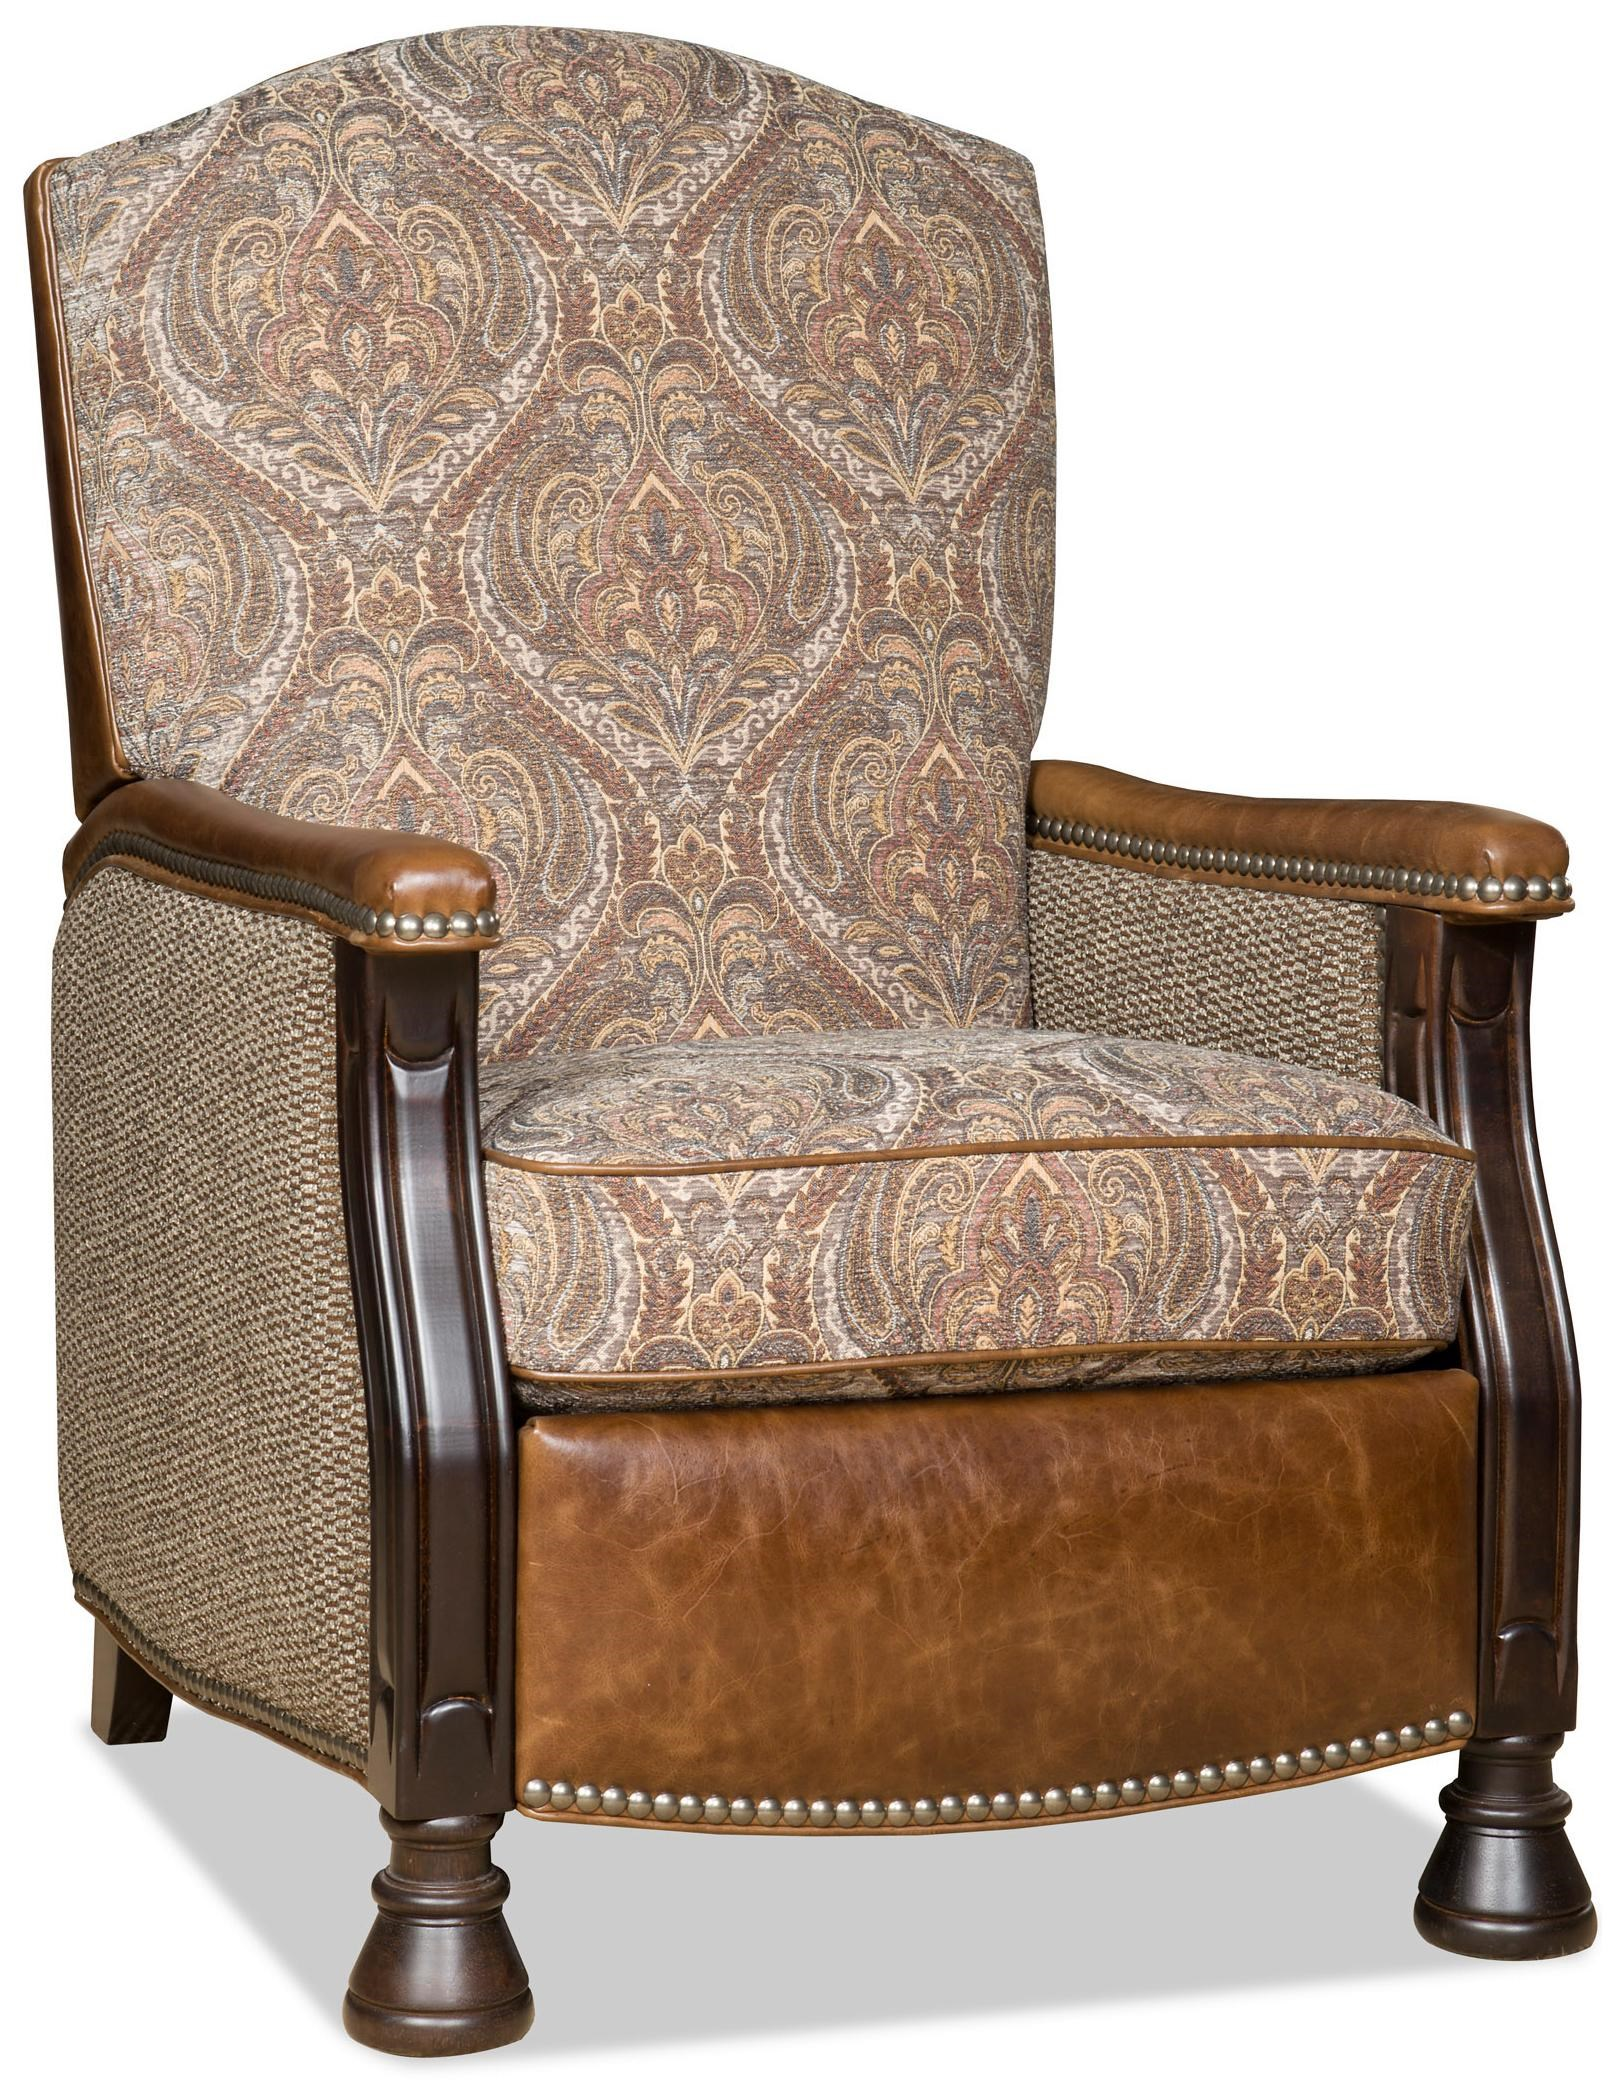 Bradington Young Chairs That Recline Homestead High